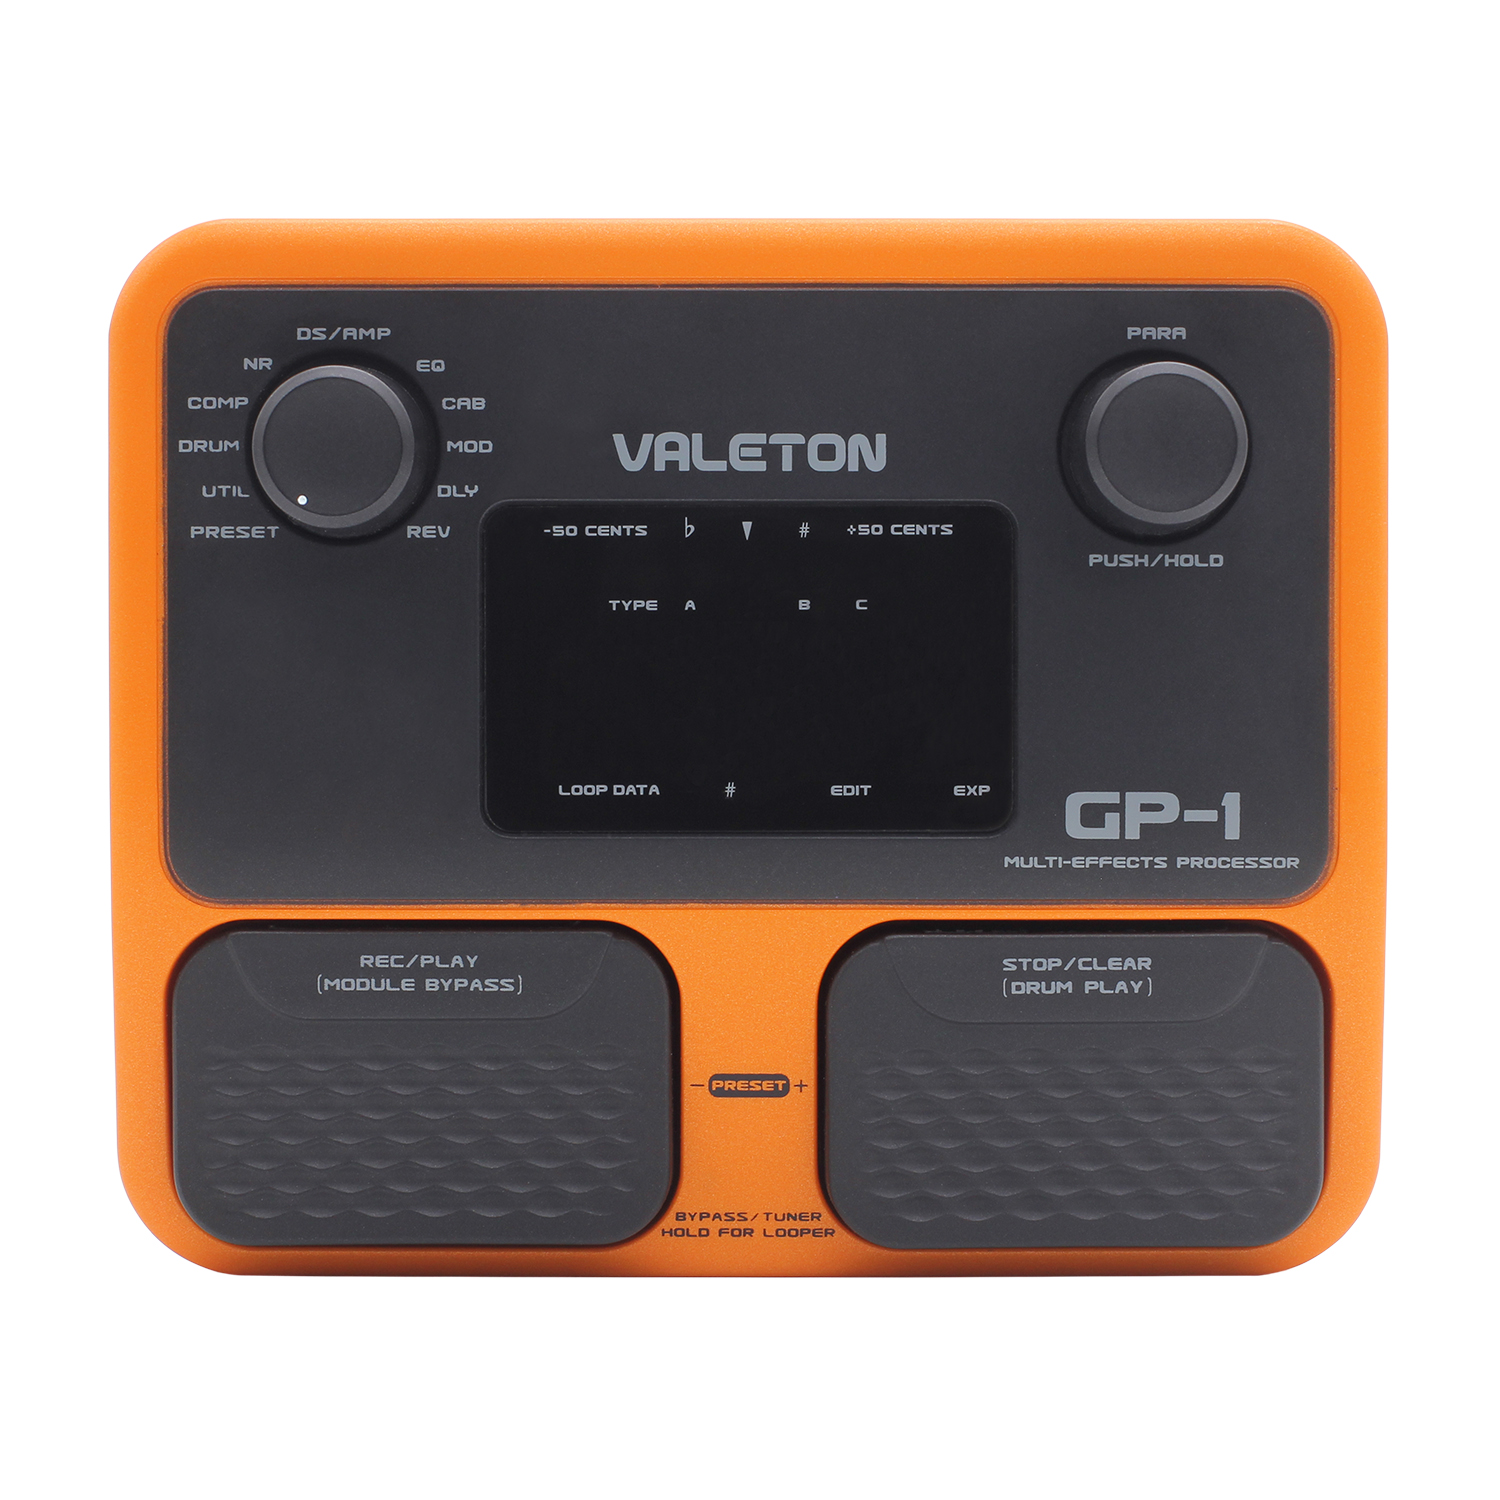 Valeton GP-1 Multi Effects Processor Guitar Effect Pedal 100 Effects, Run 8 Effects Simultaneously wavelets processor